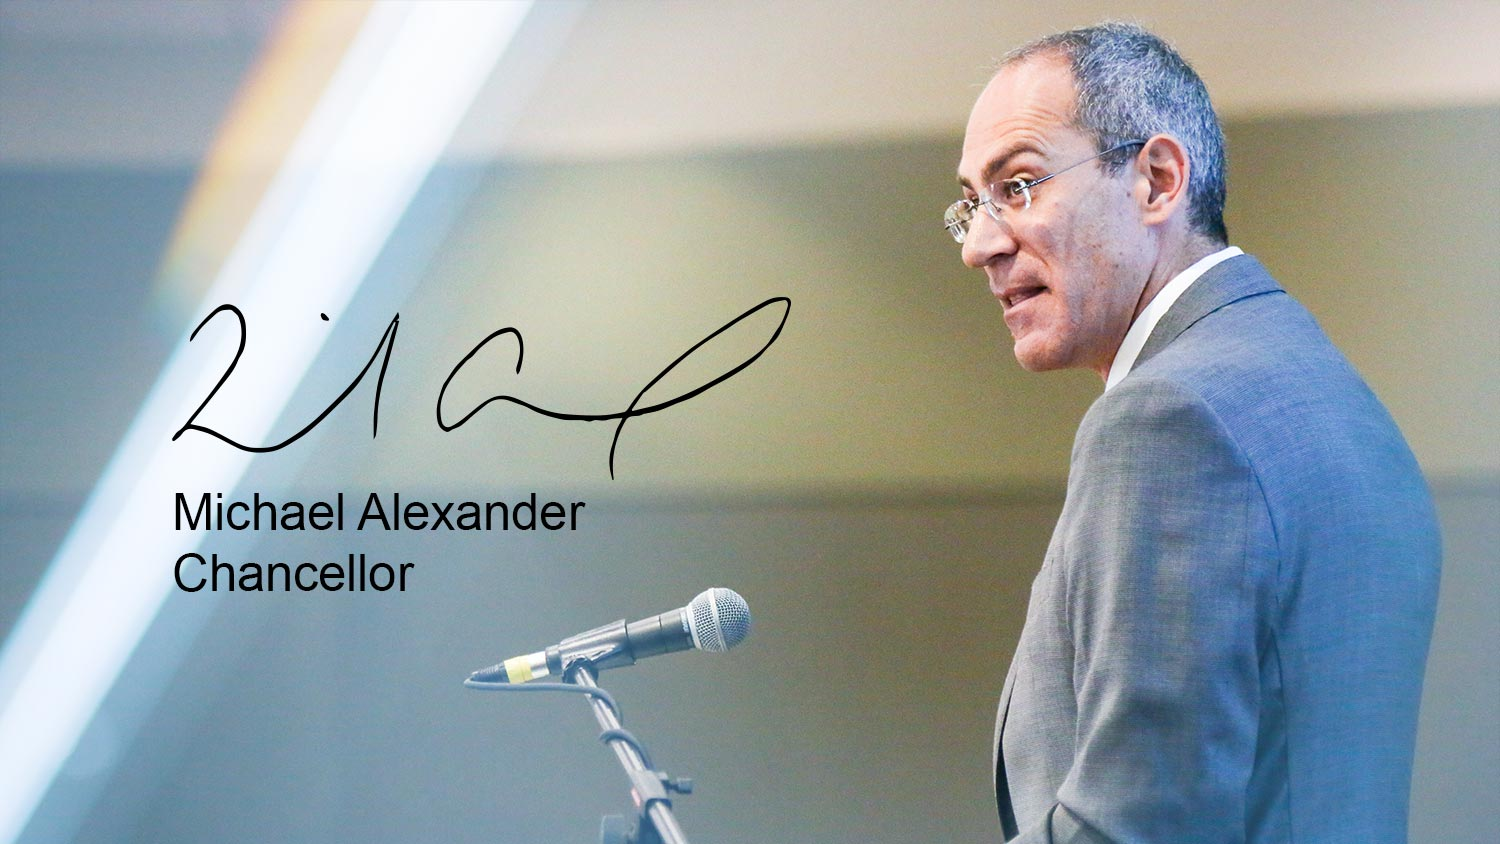 Michael Alexander at a microphone | Signature of Michael Alexander | Michael Alexander, Chancellor